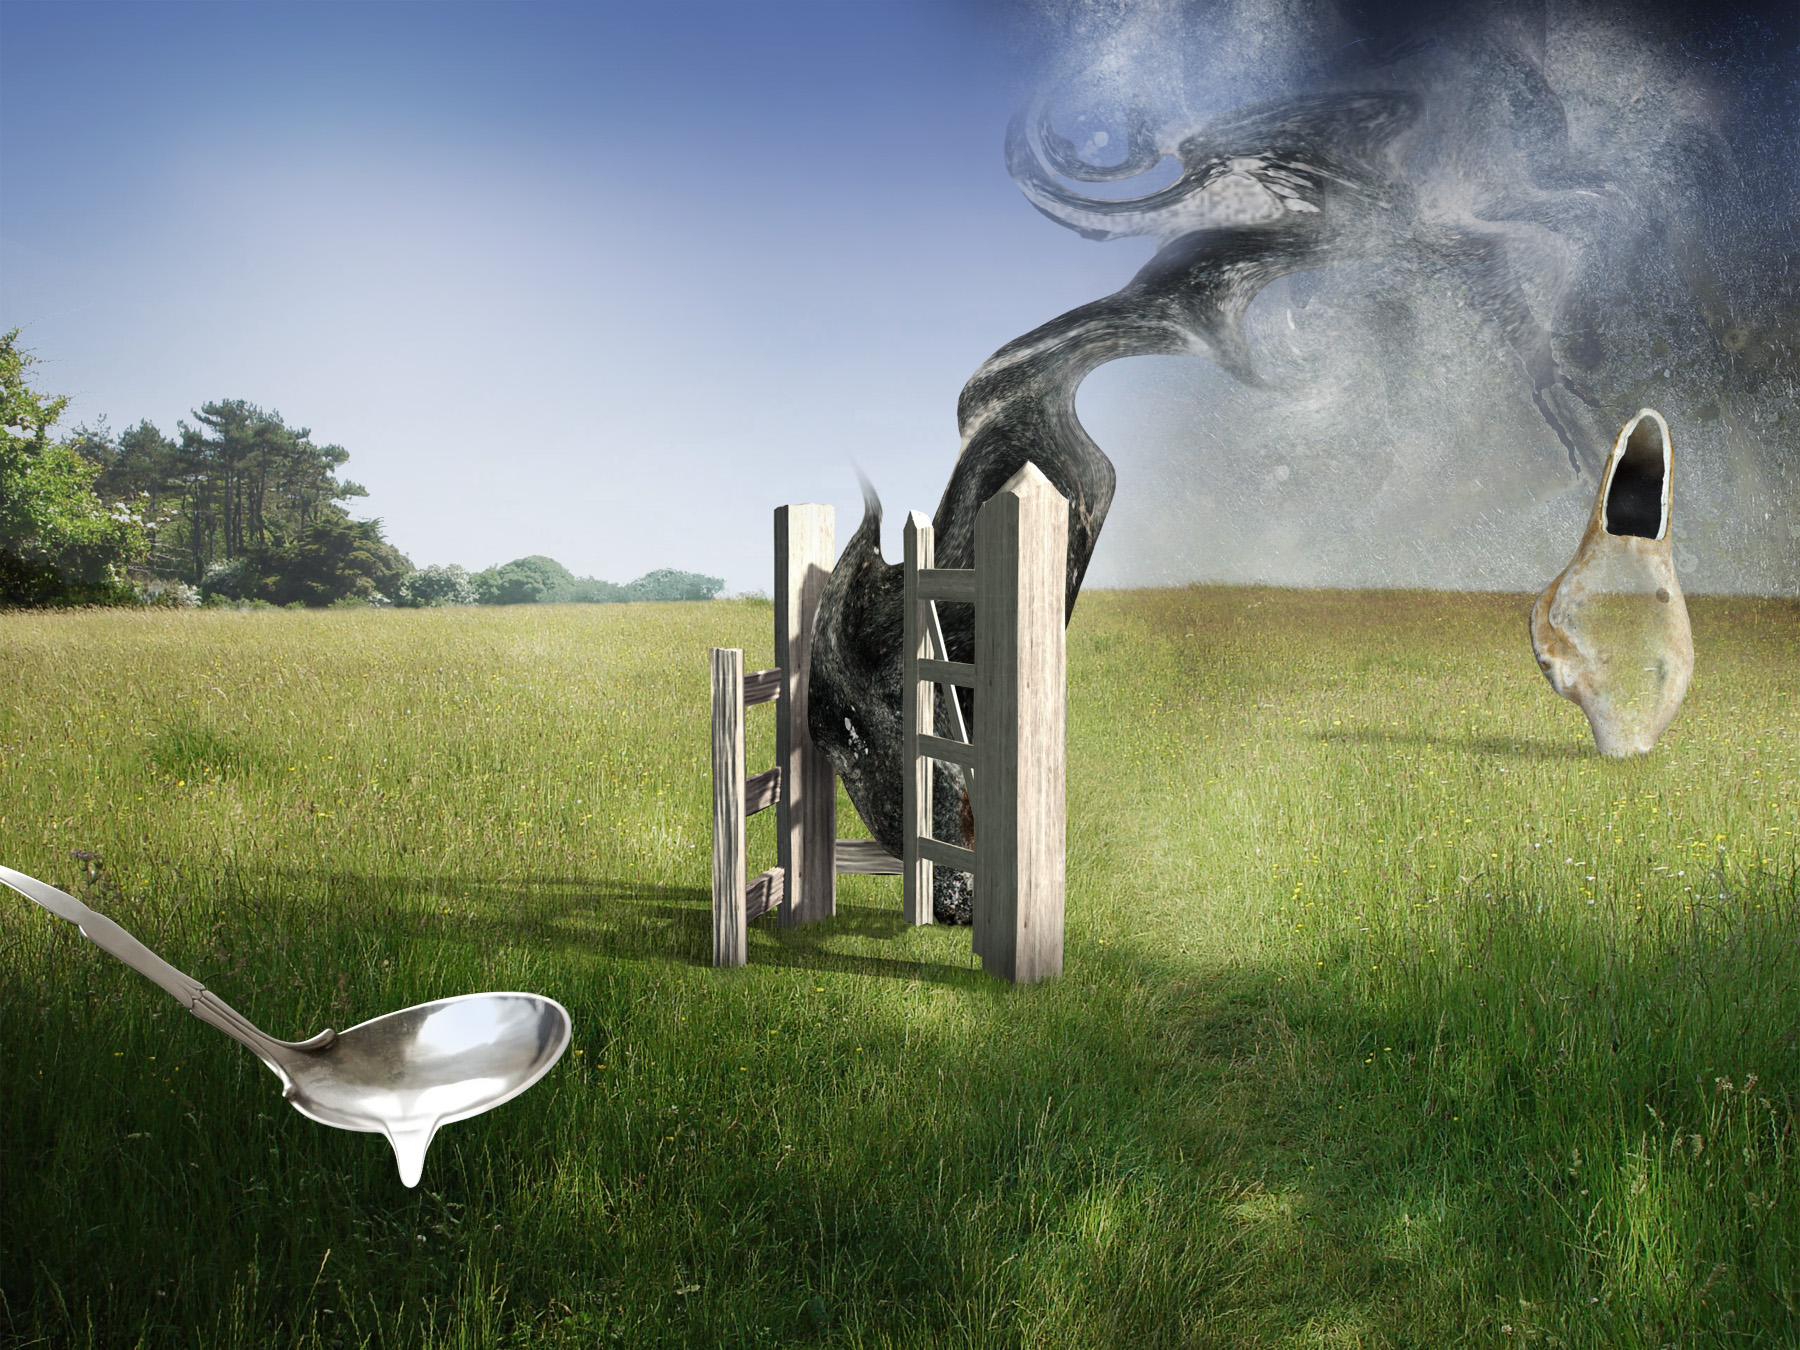 the gate, surreal landscape by Shannon Ribbons